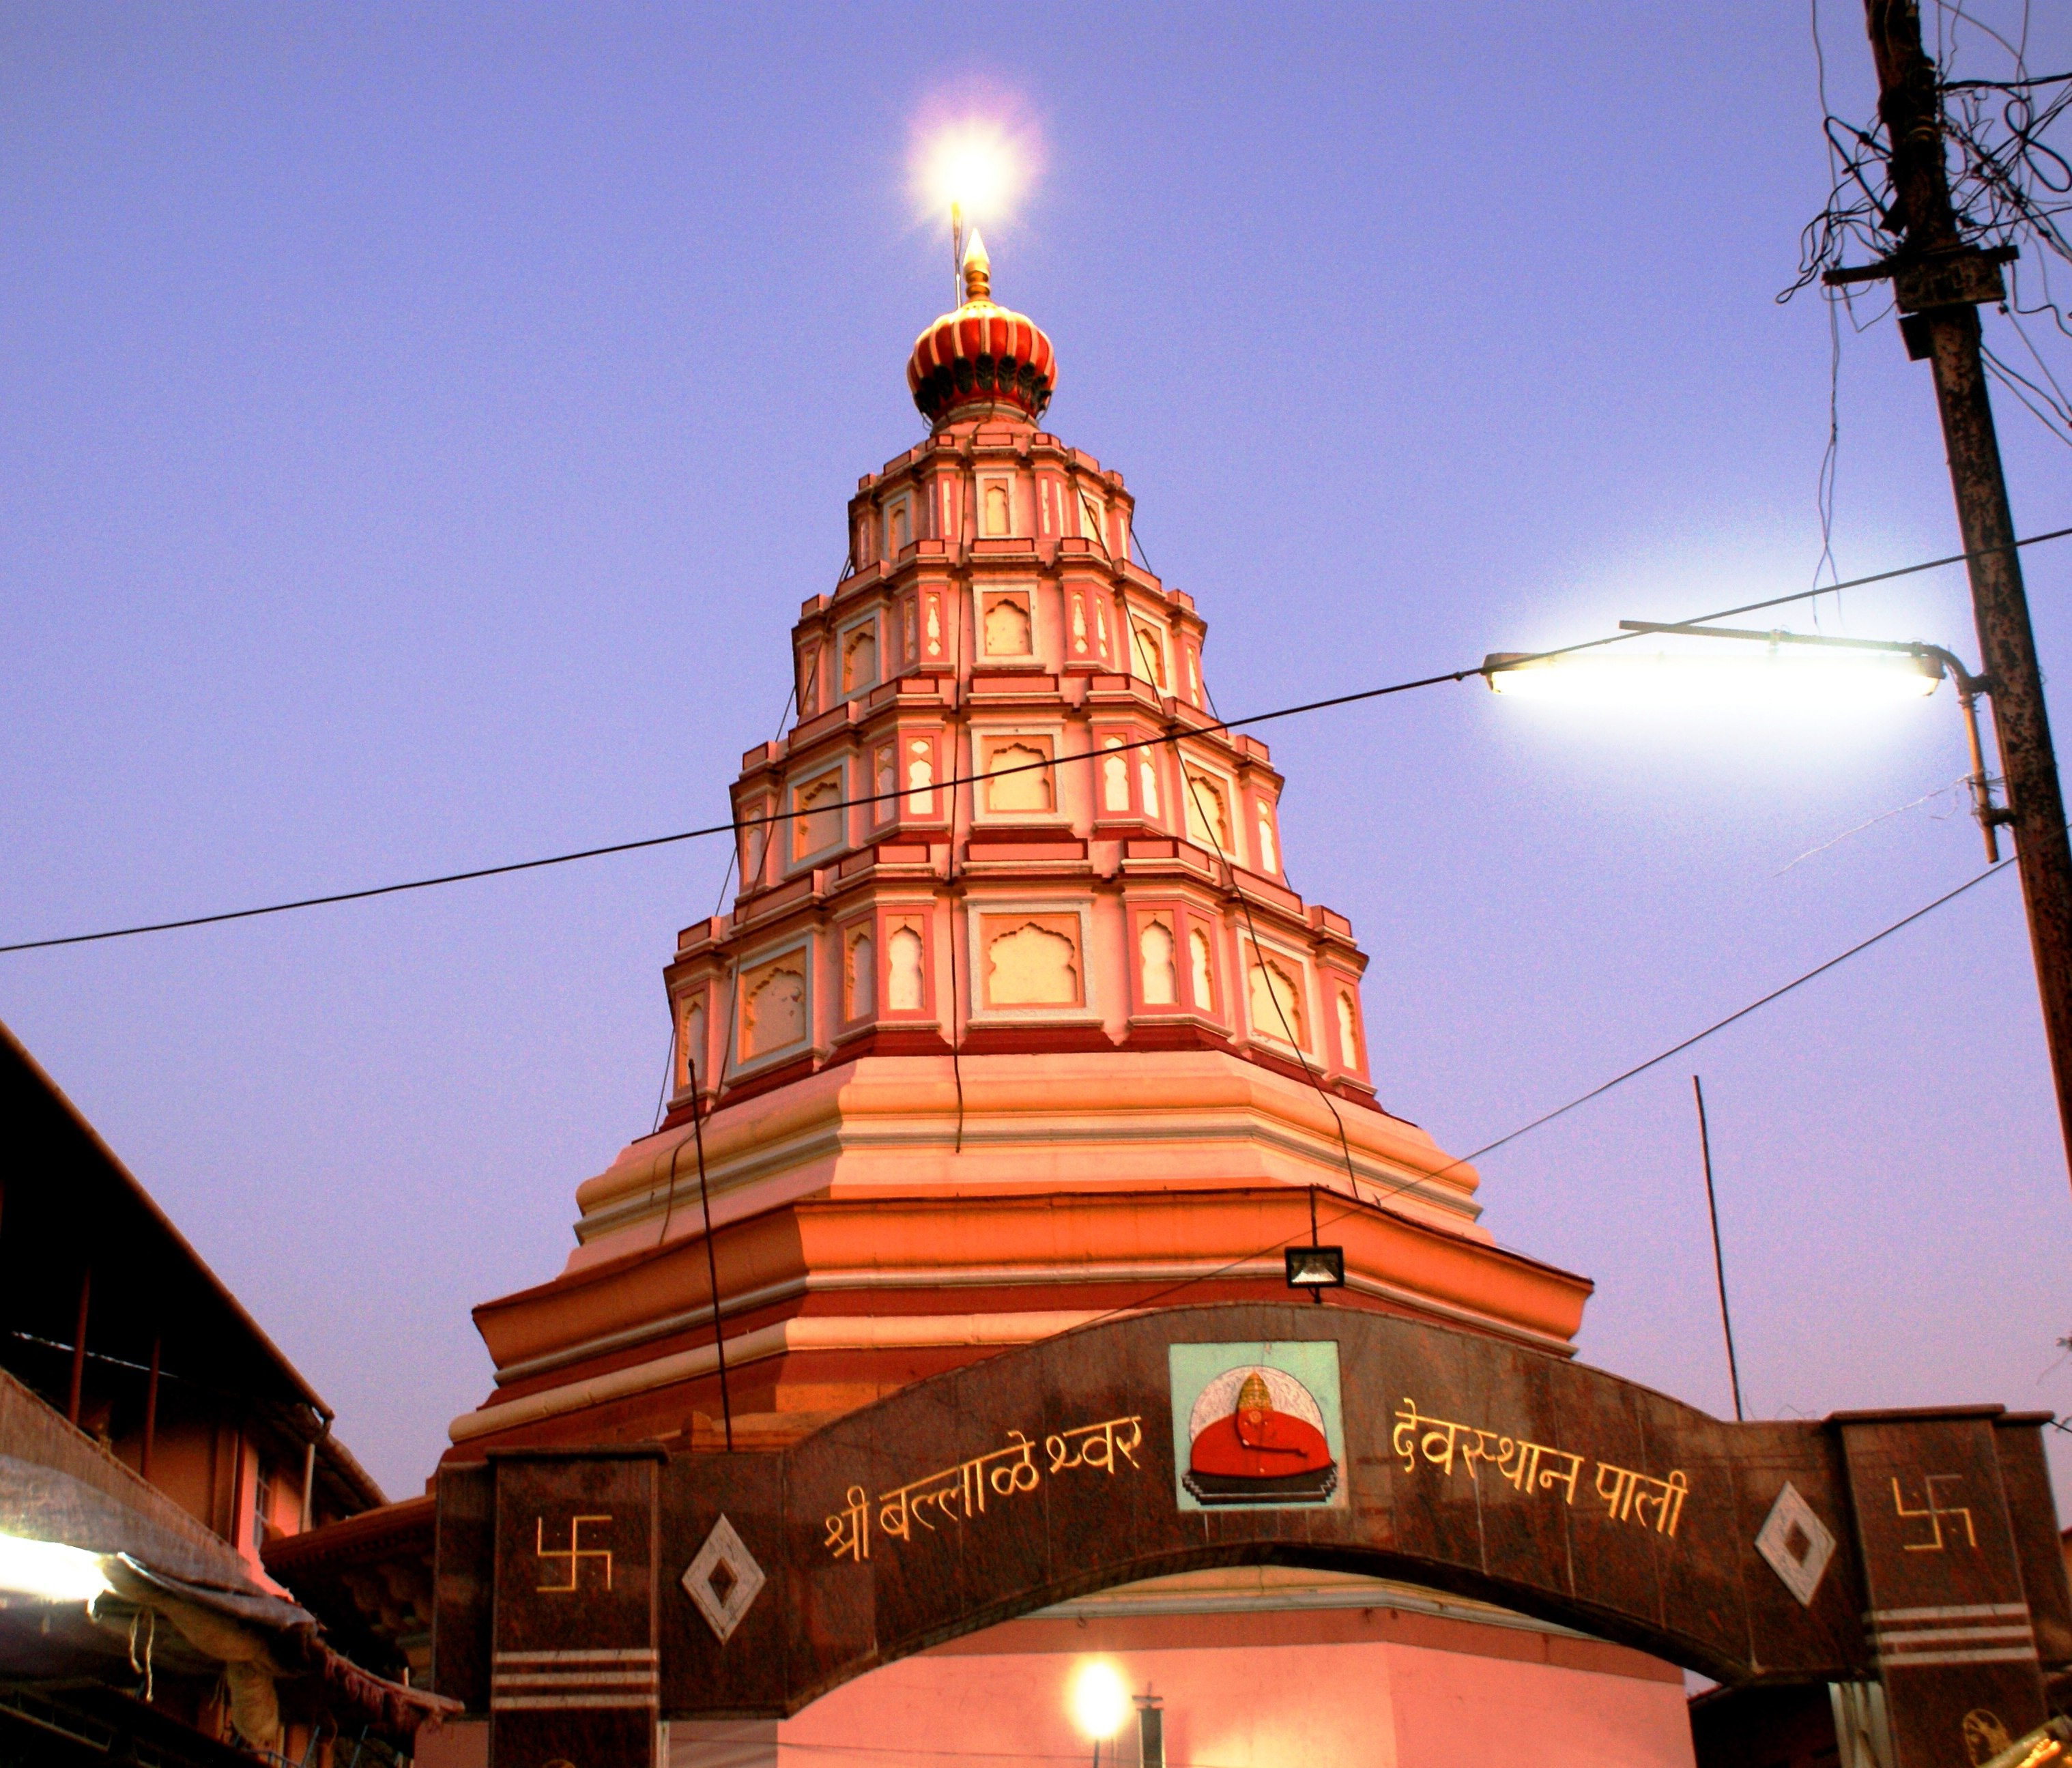 List of Ganesha temples - The complete information and